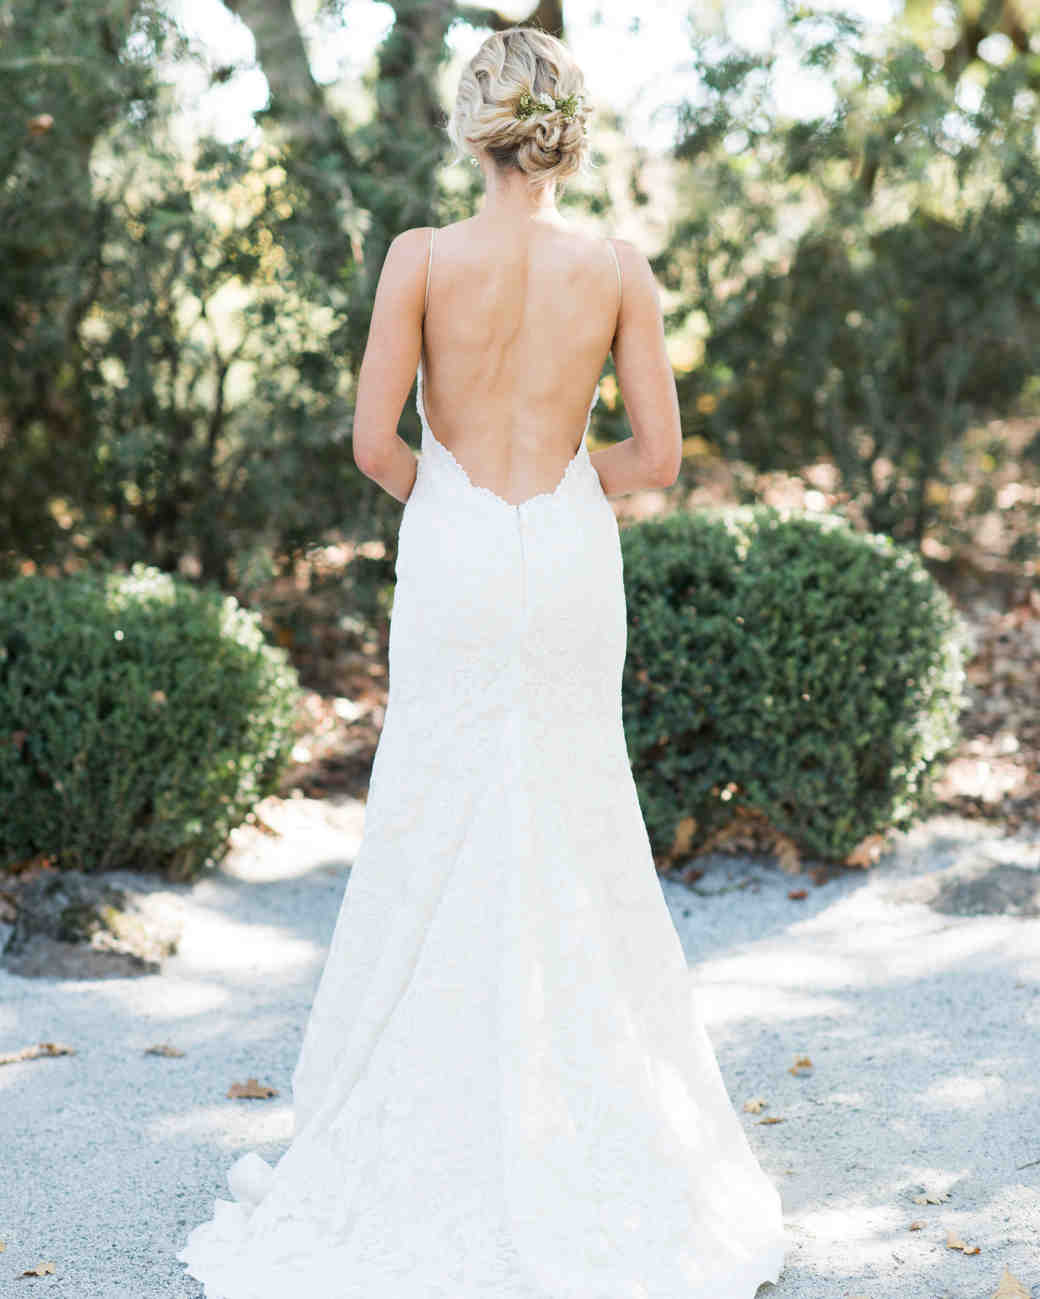 A Bride Wearing an Open-Back Wedding Dress